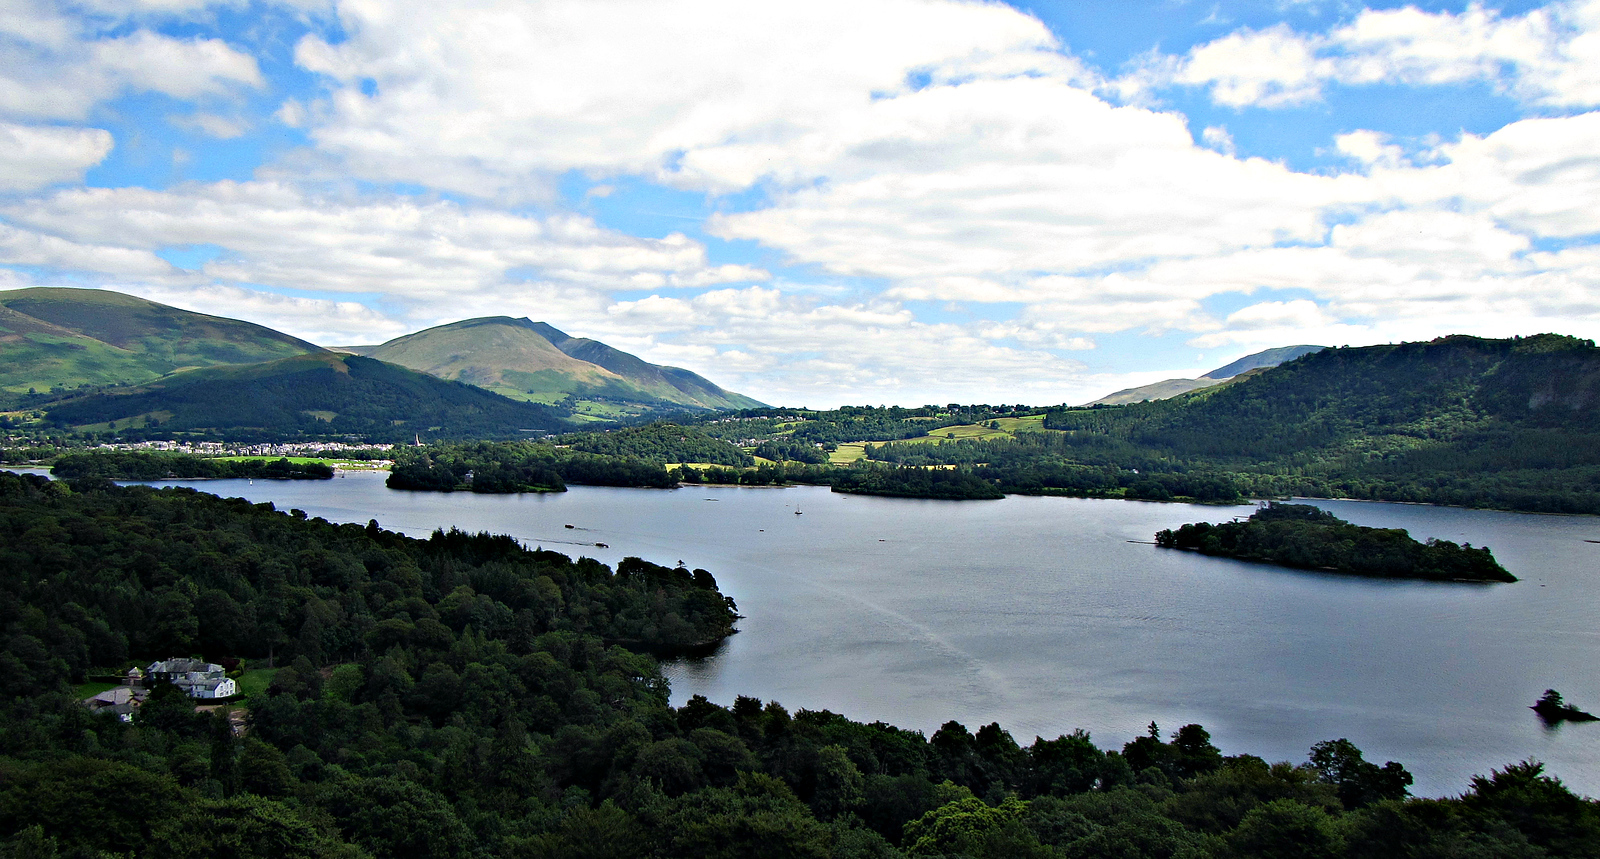 Looking NE to Keswick, from trail up Cat Bells.